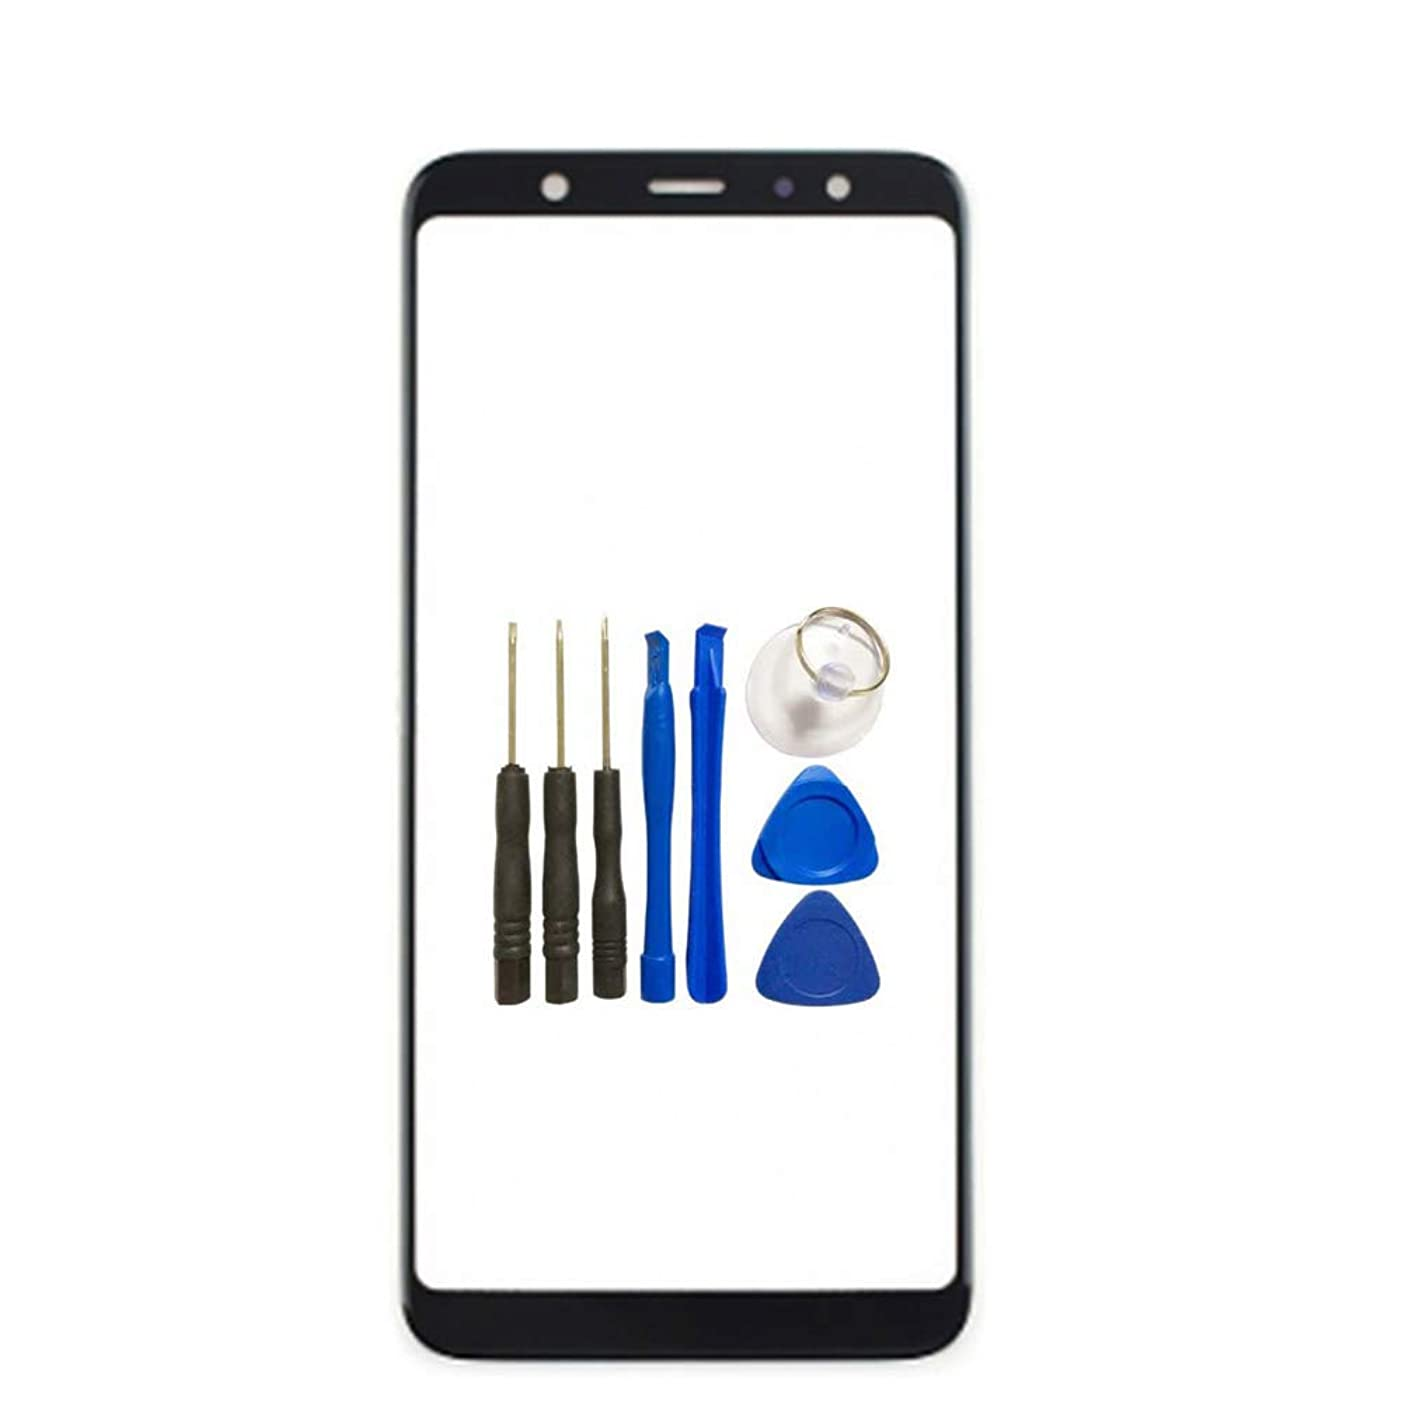 for Samsung Galaxy A6 2018 A600 Screen Glass Panel Lens Replacement - Black Outer Front Screen Glass Panel Lens Replacement for Samsung Galaxy A6 2018 with Opening Tools (Not LCD &Not Digitizer)